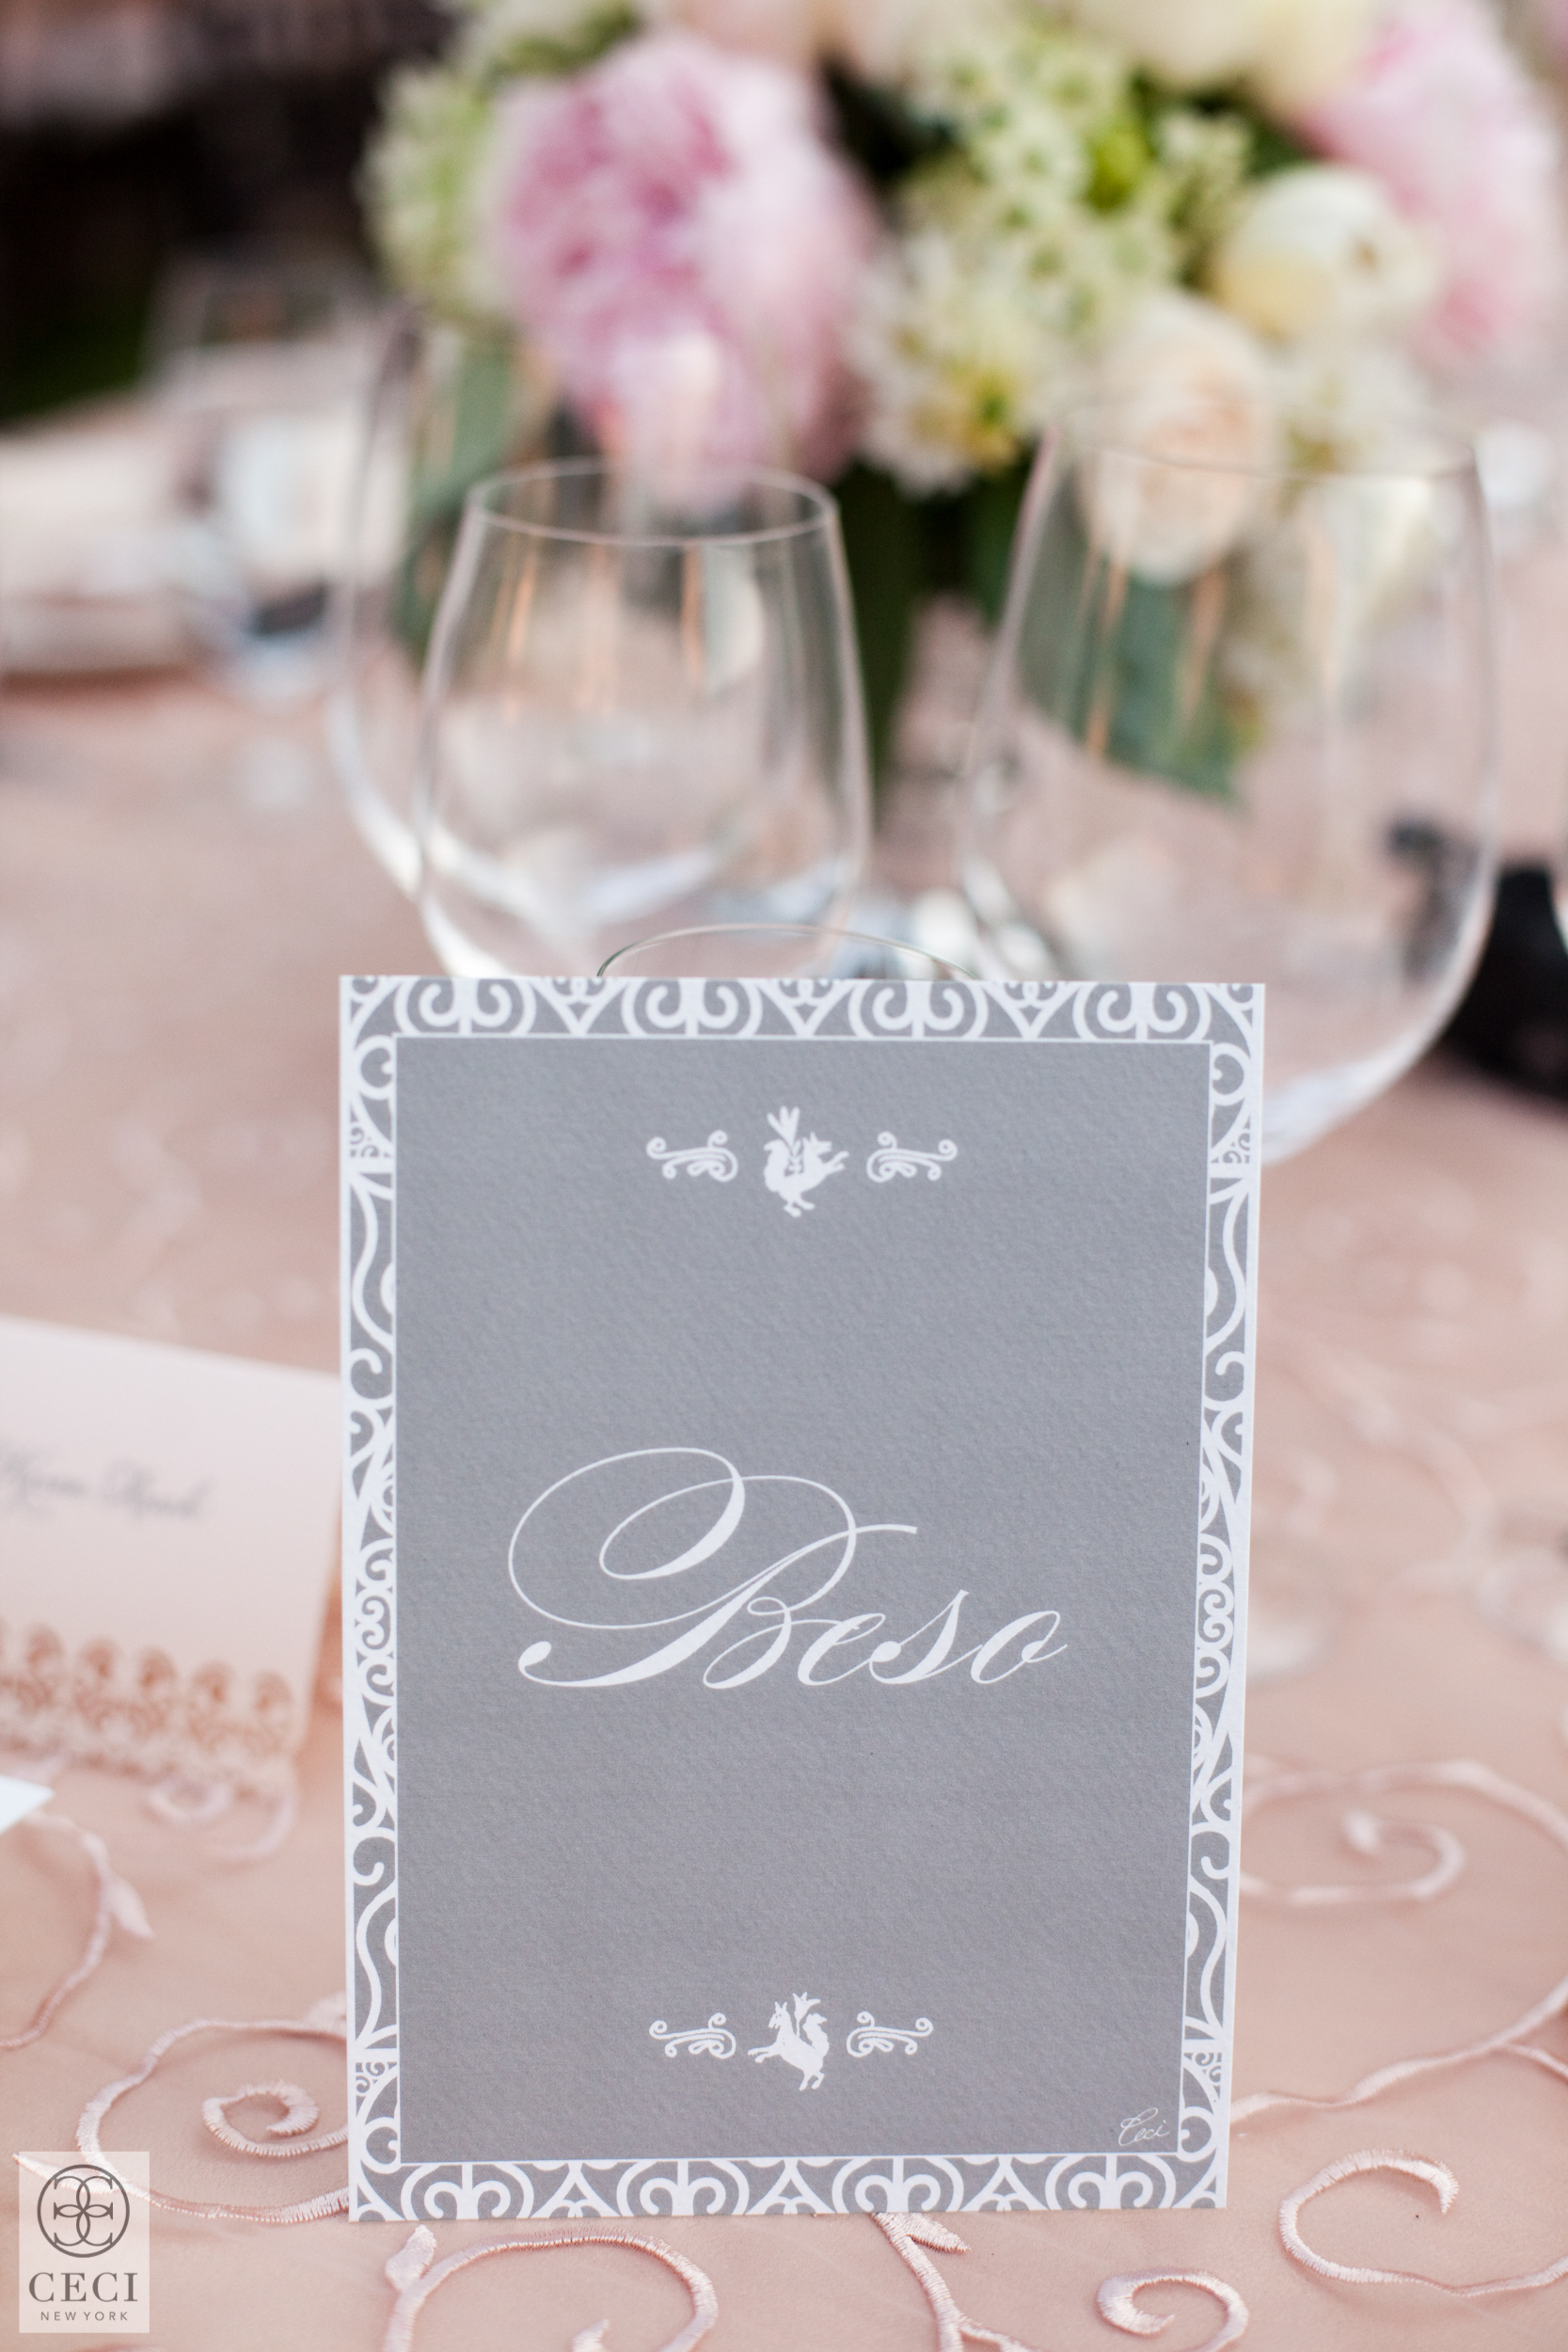 Ceci_New_York_Custom_Luxury_Wedding_LaserCut_Stationery_Personalized_Couture_Foil_Stamping_Mexico_Otomi_Chic_-18.jpg